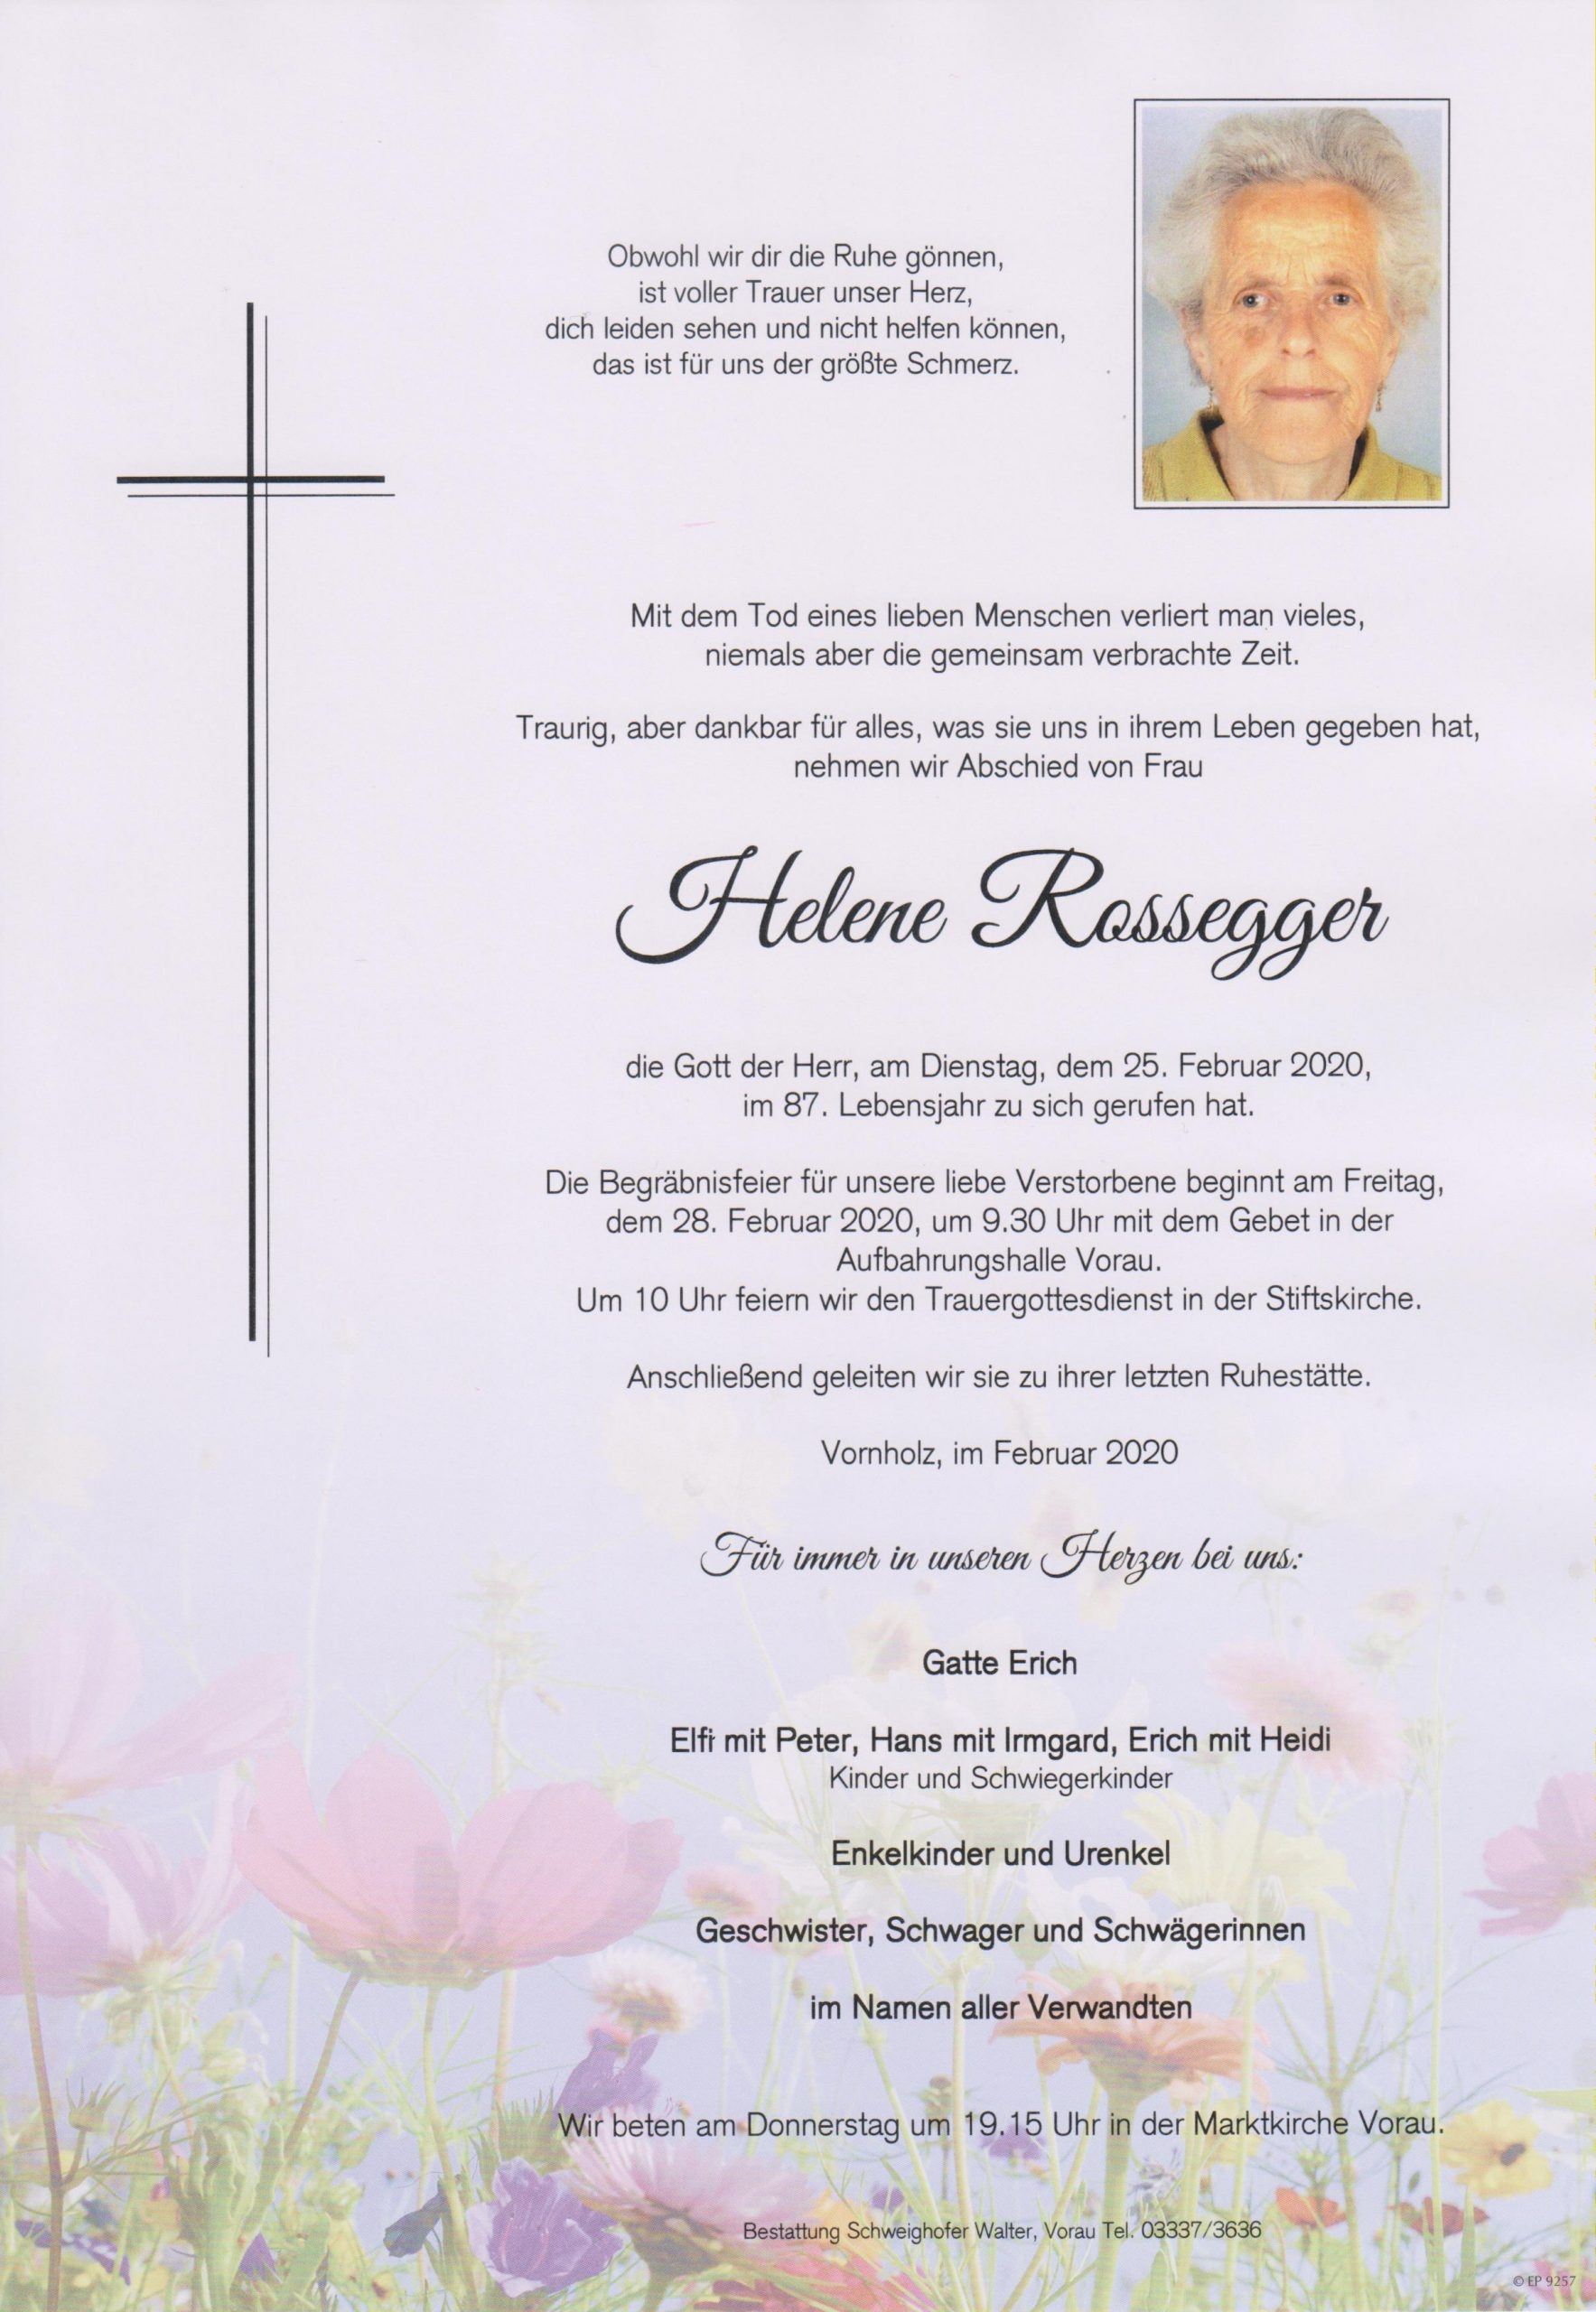 You are currently viewing Helene Rossegger